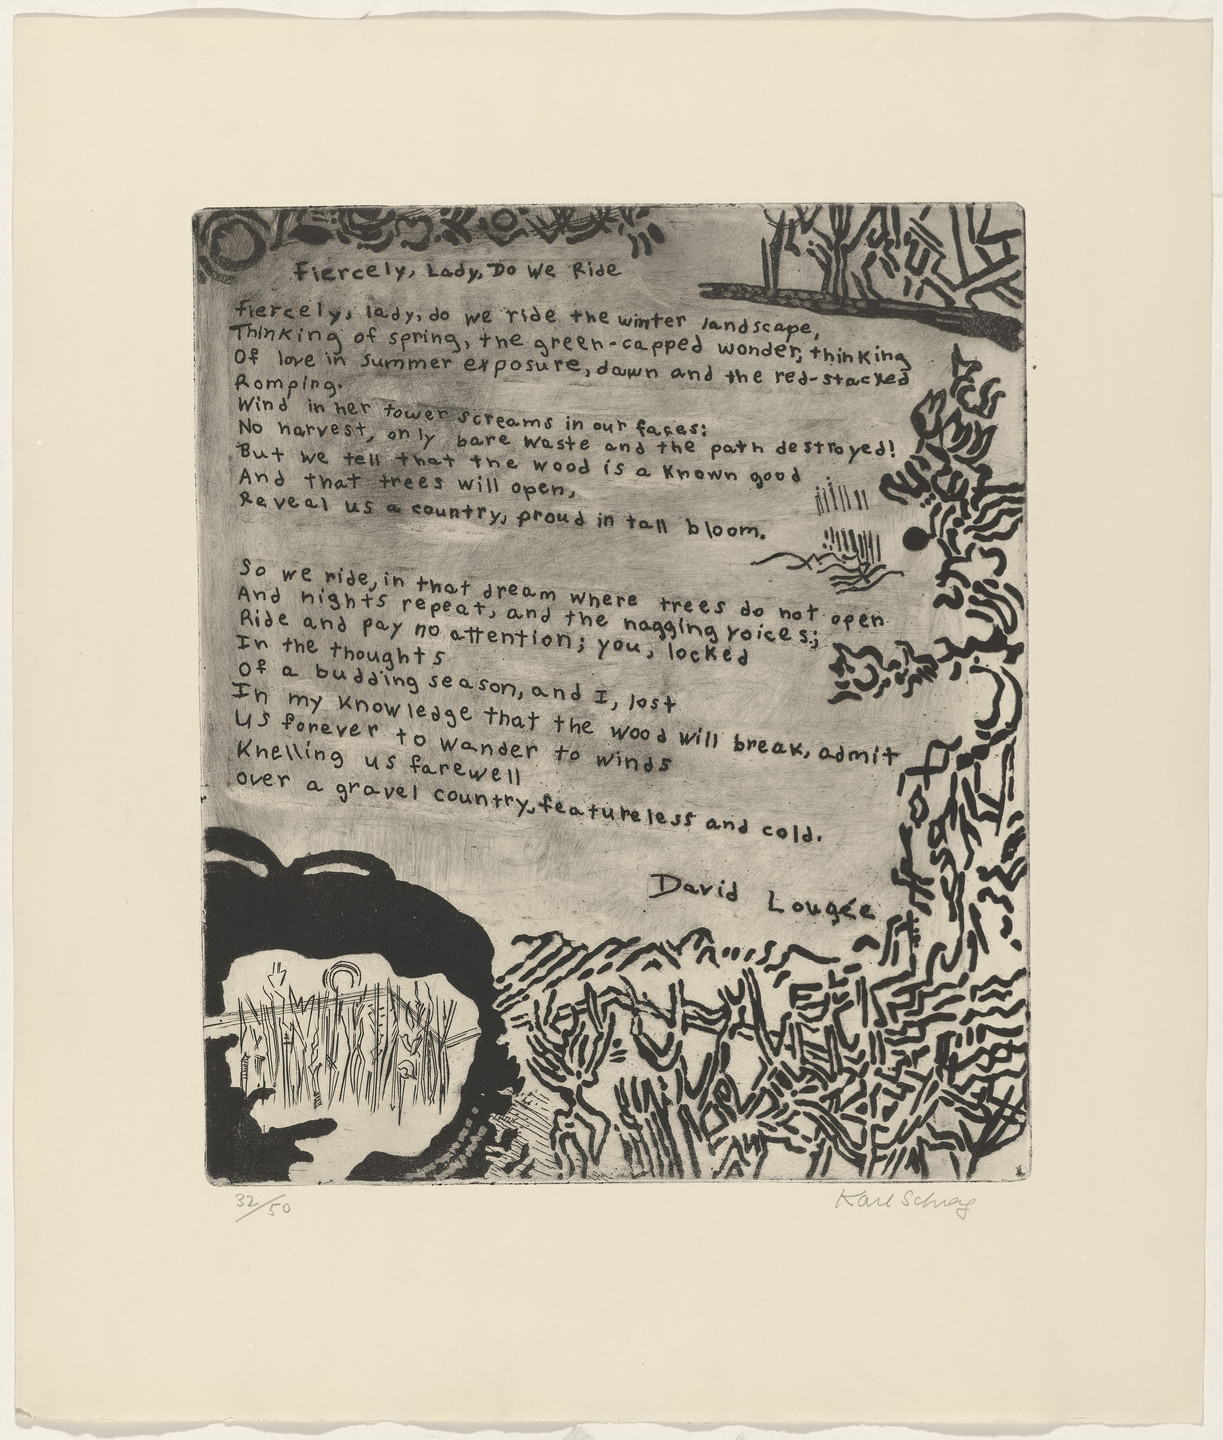 Karl Schrag, David Lougée. In-text plate (folio 22) from 21 Etchings and Poems. 1956, published 1960